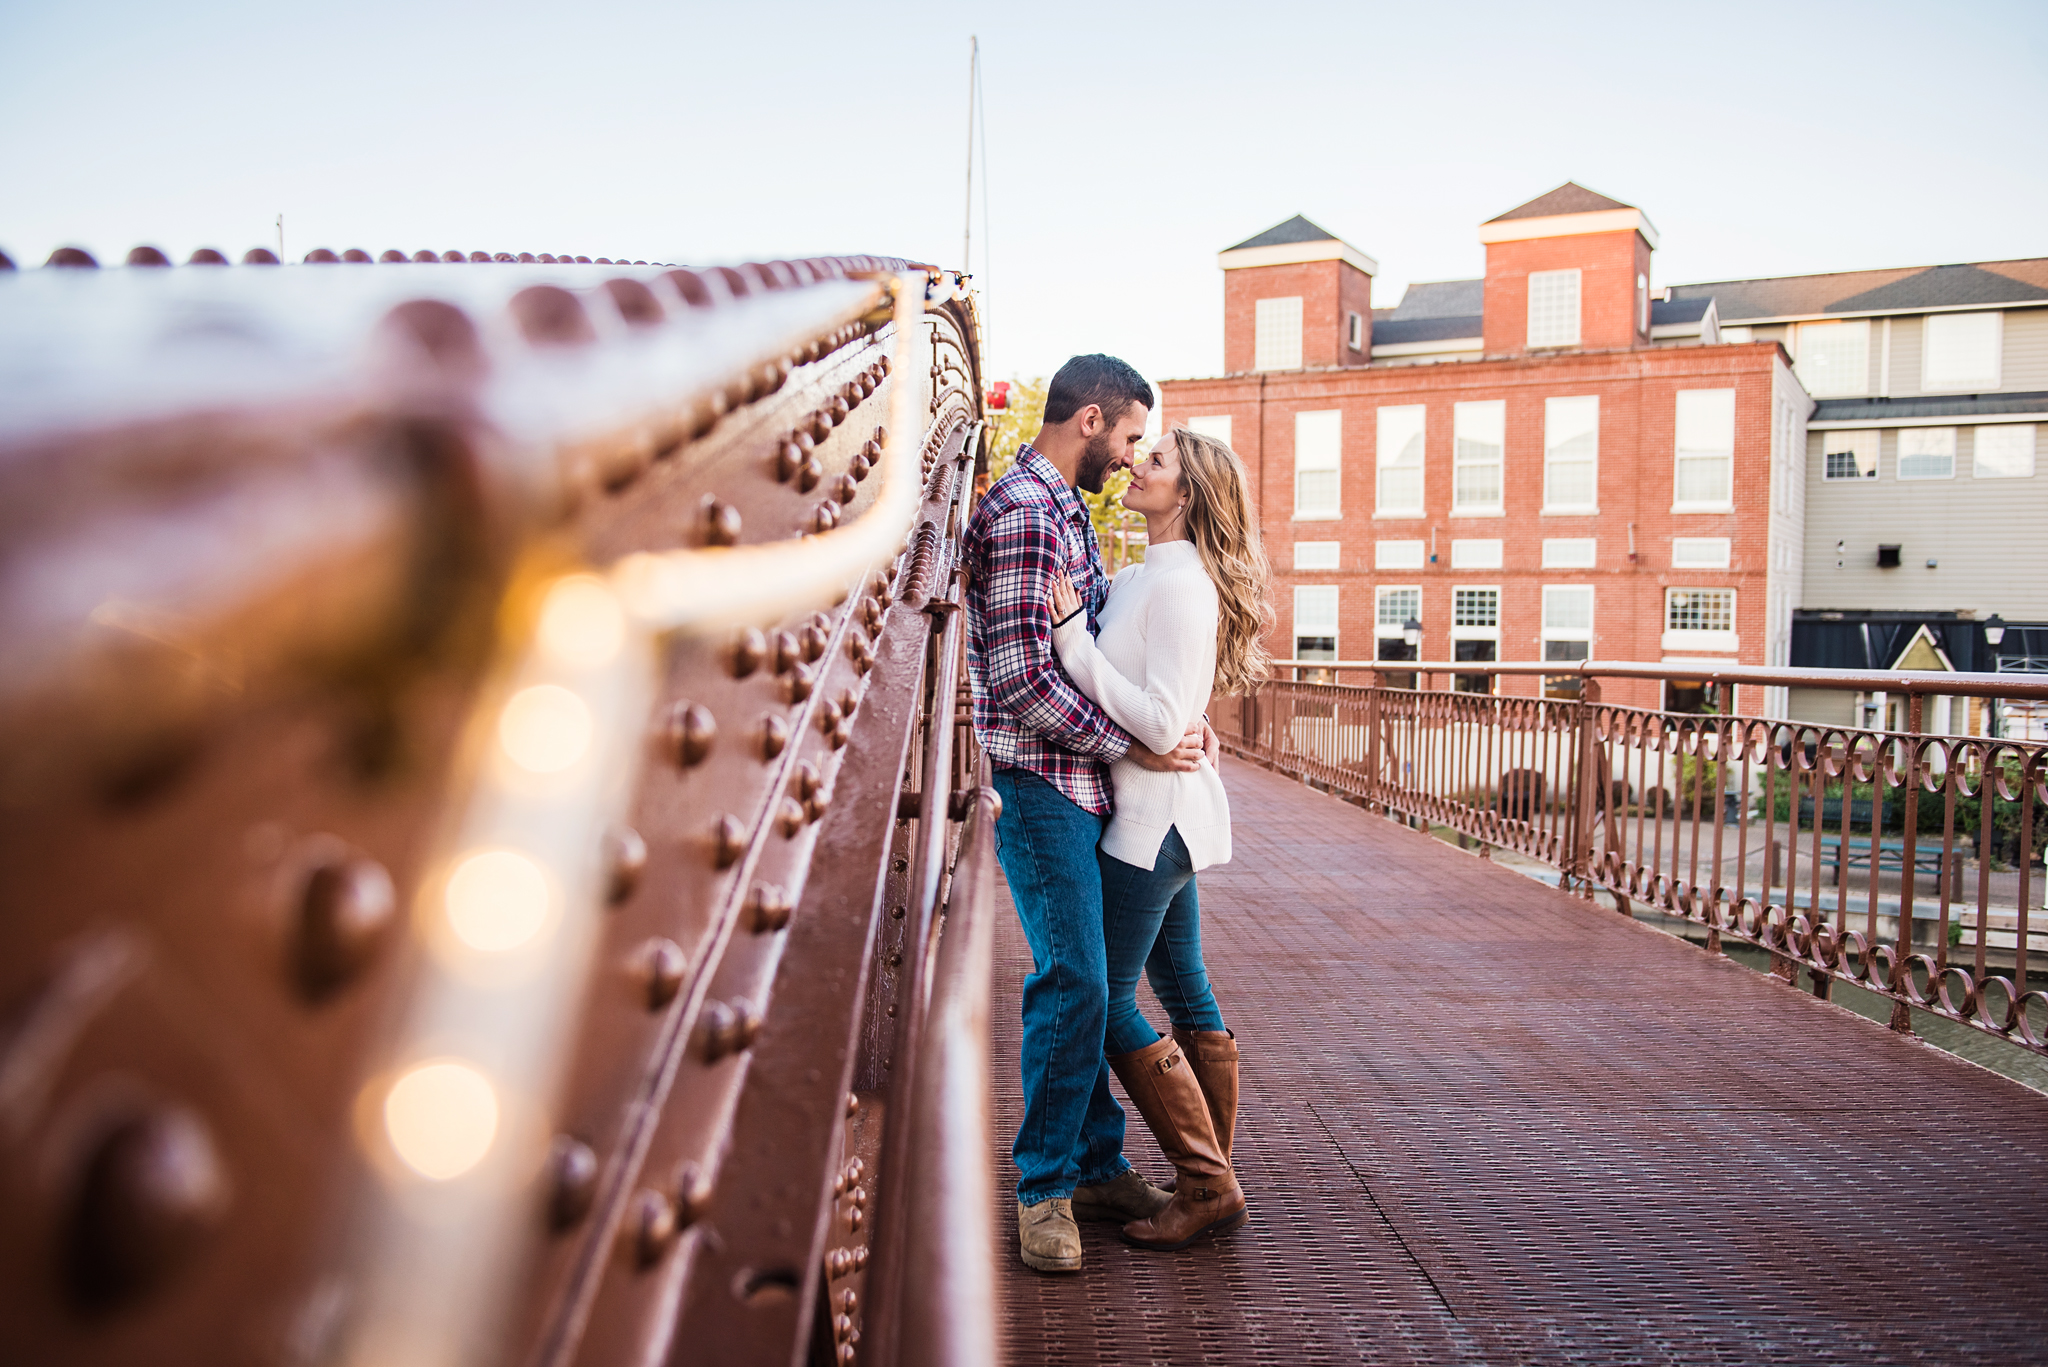 Village_of_Fairport_Rochester_Engagement_Session_JILL_STUDIO_Rochester_NY_Photographer_DSC_8829.jpg